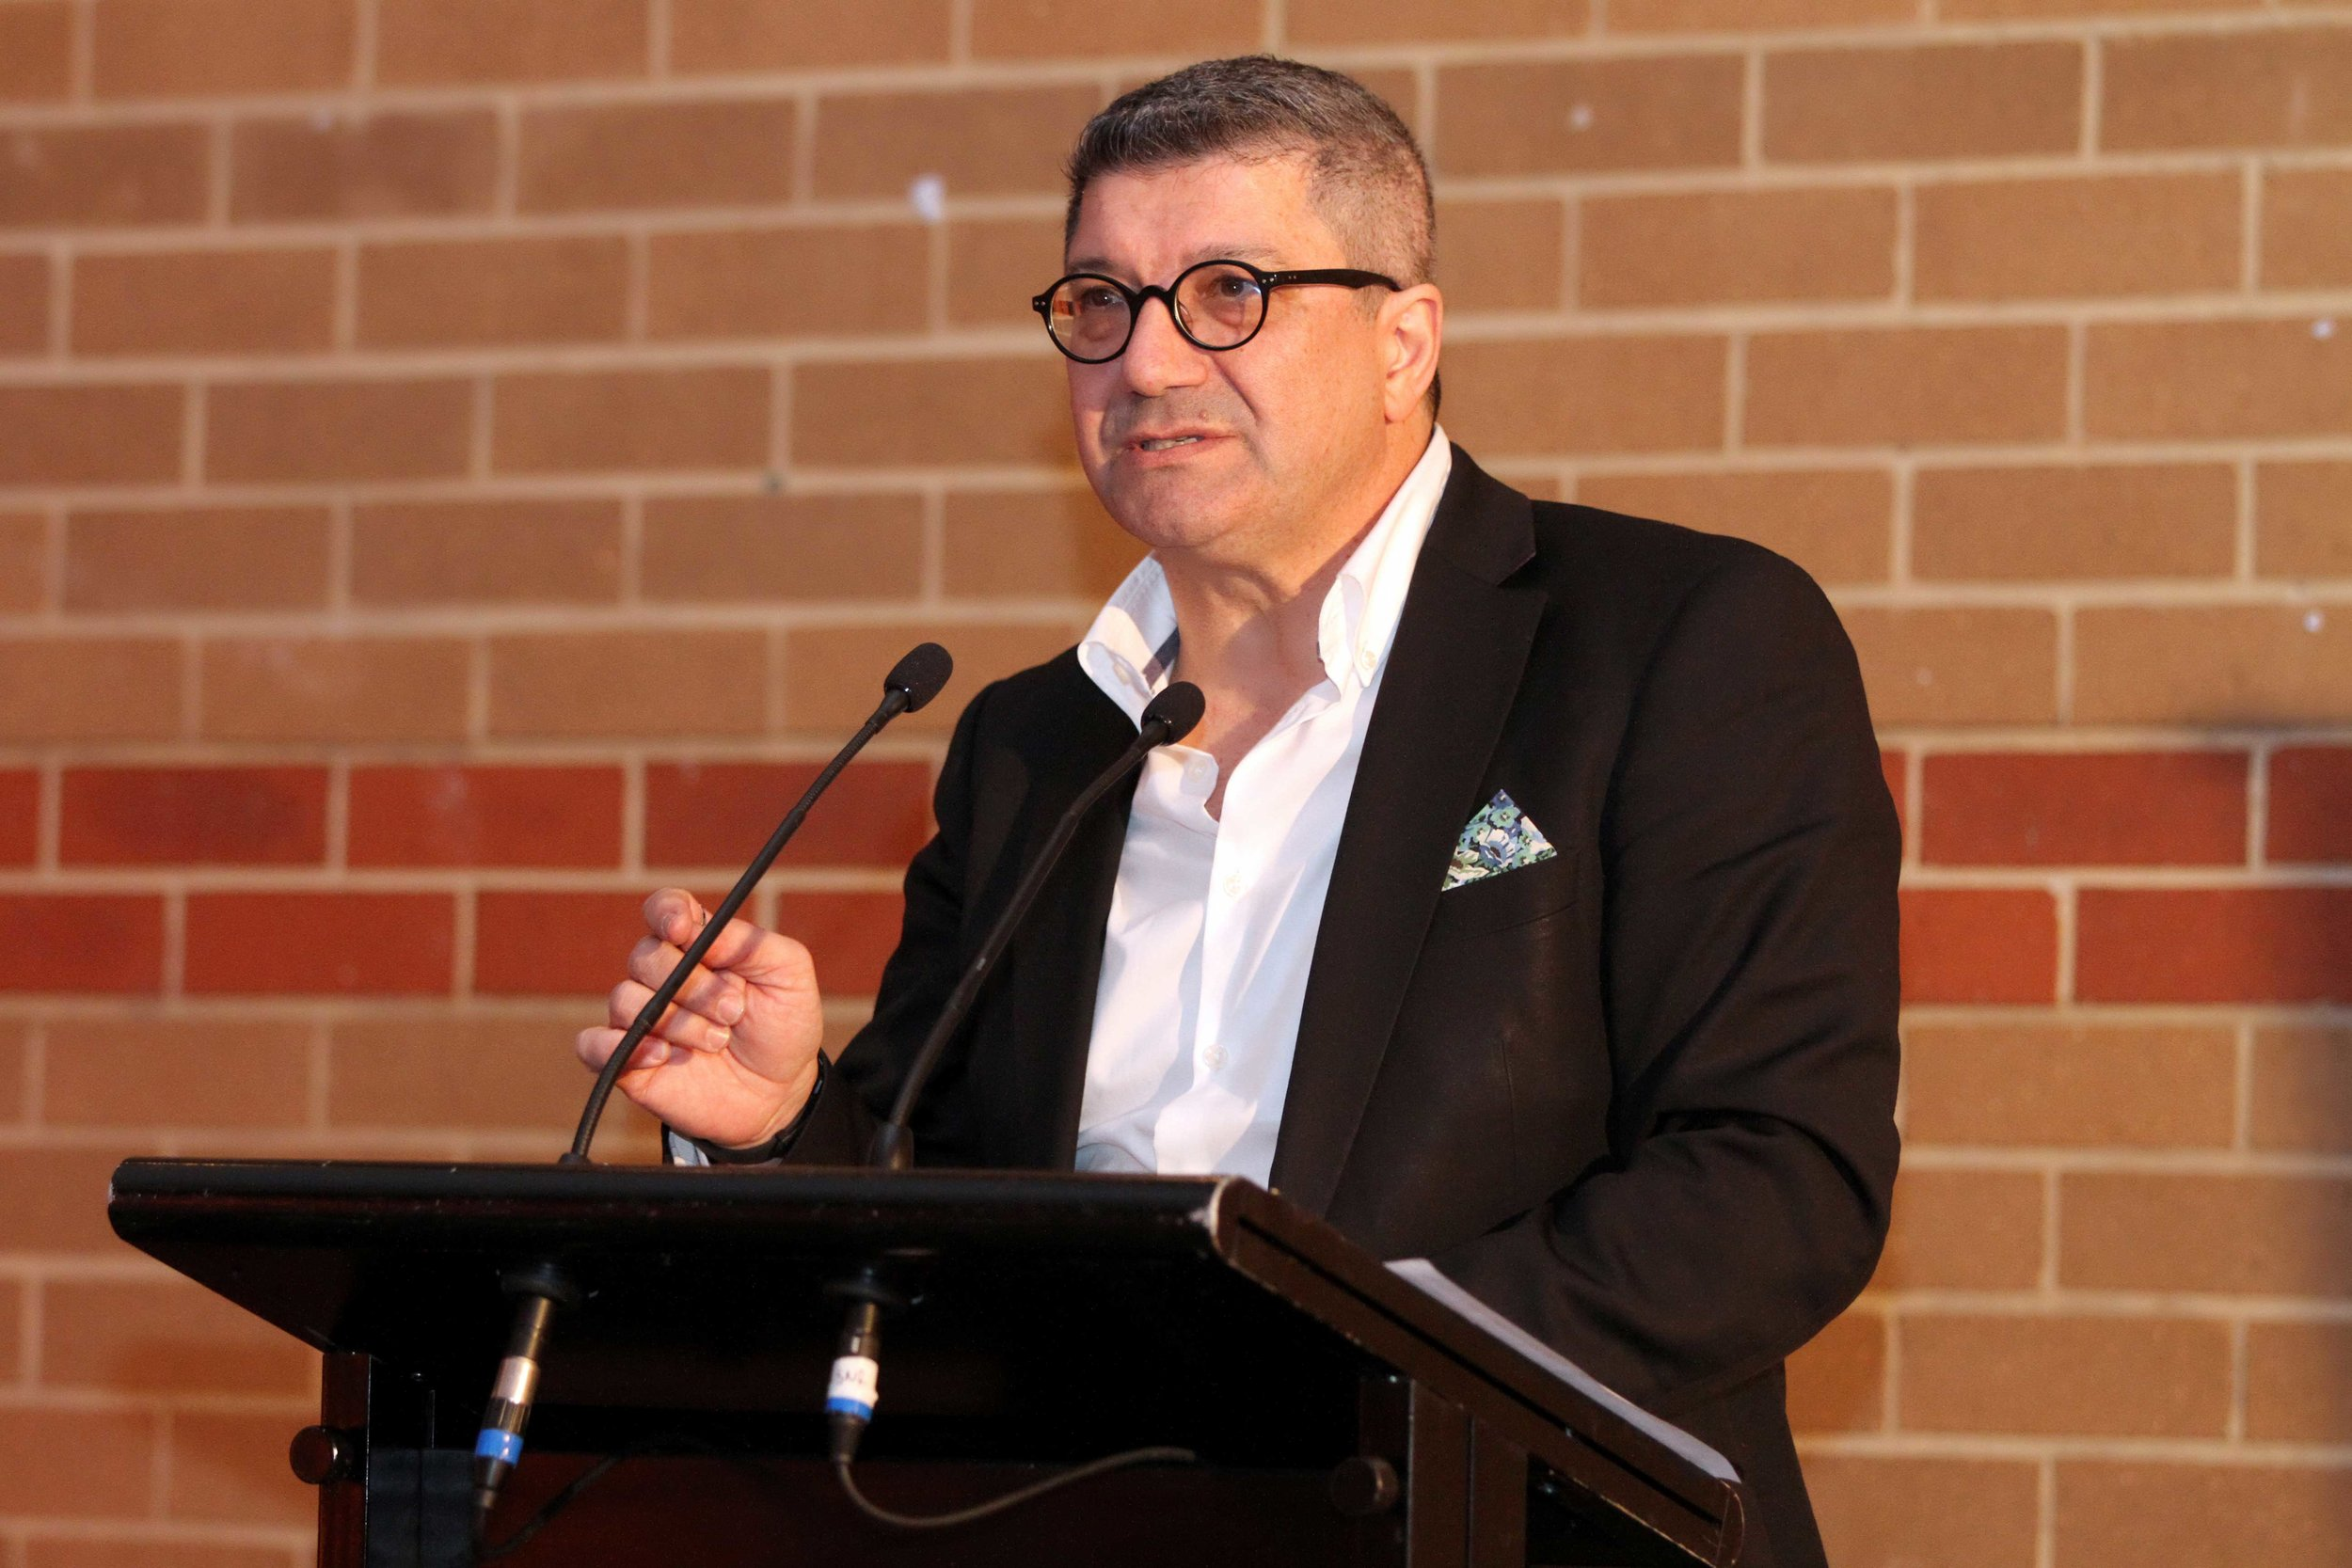 Pino Migliorino AM, Managing Director of Cultural Perspectives Group, speaks at the opening night.